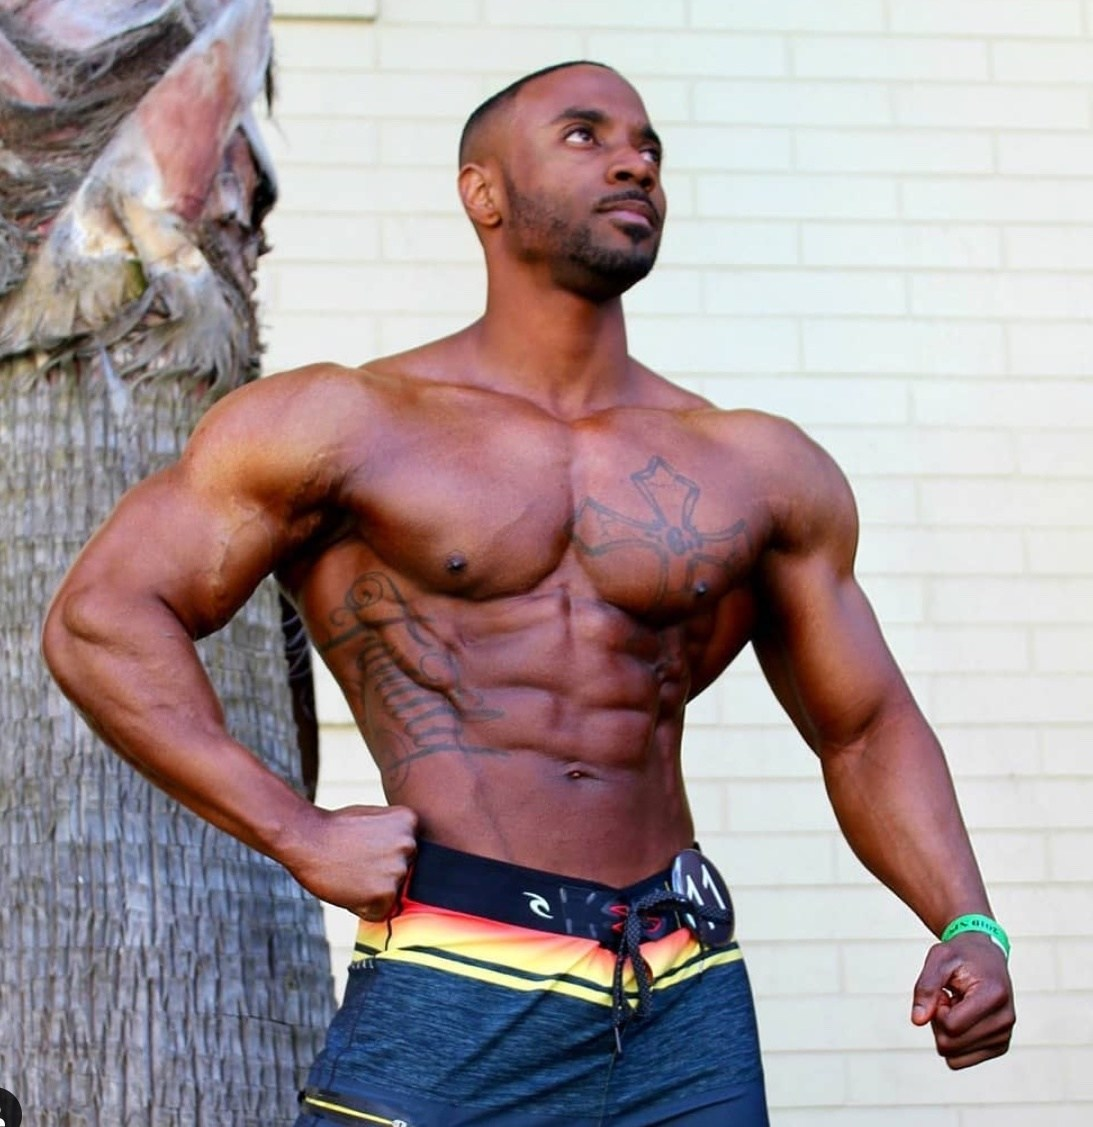 IFBB Pro Chris Henderson signs with Mon Ethos Pro